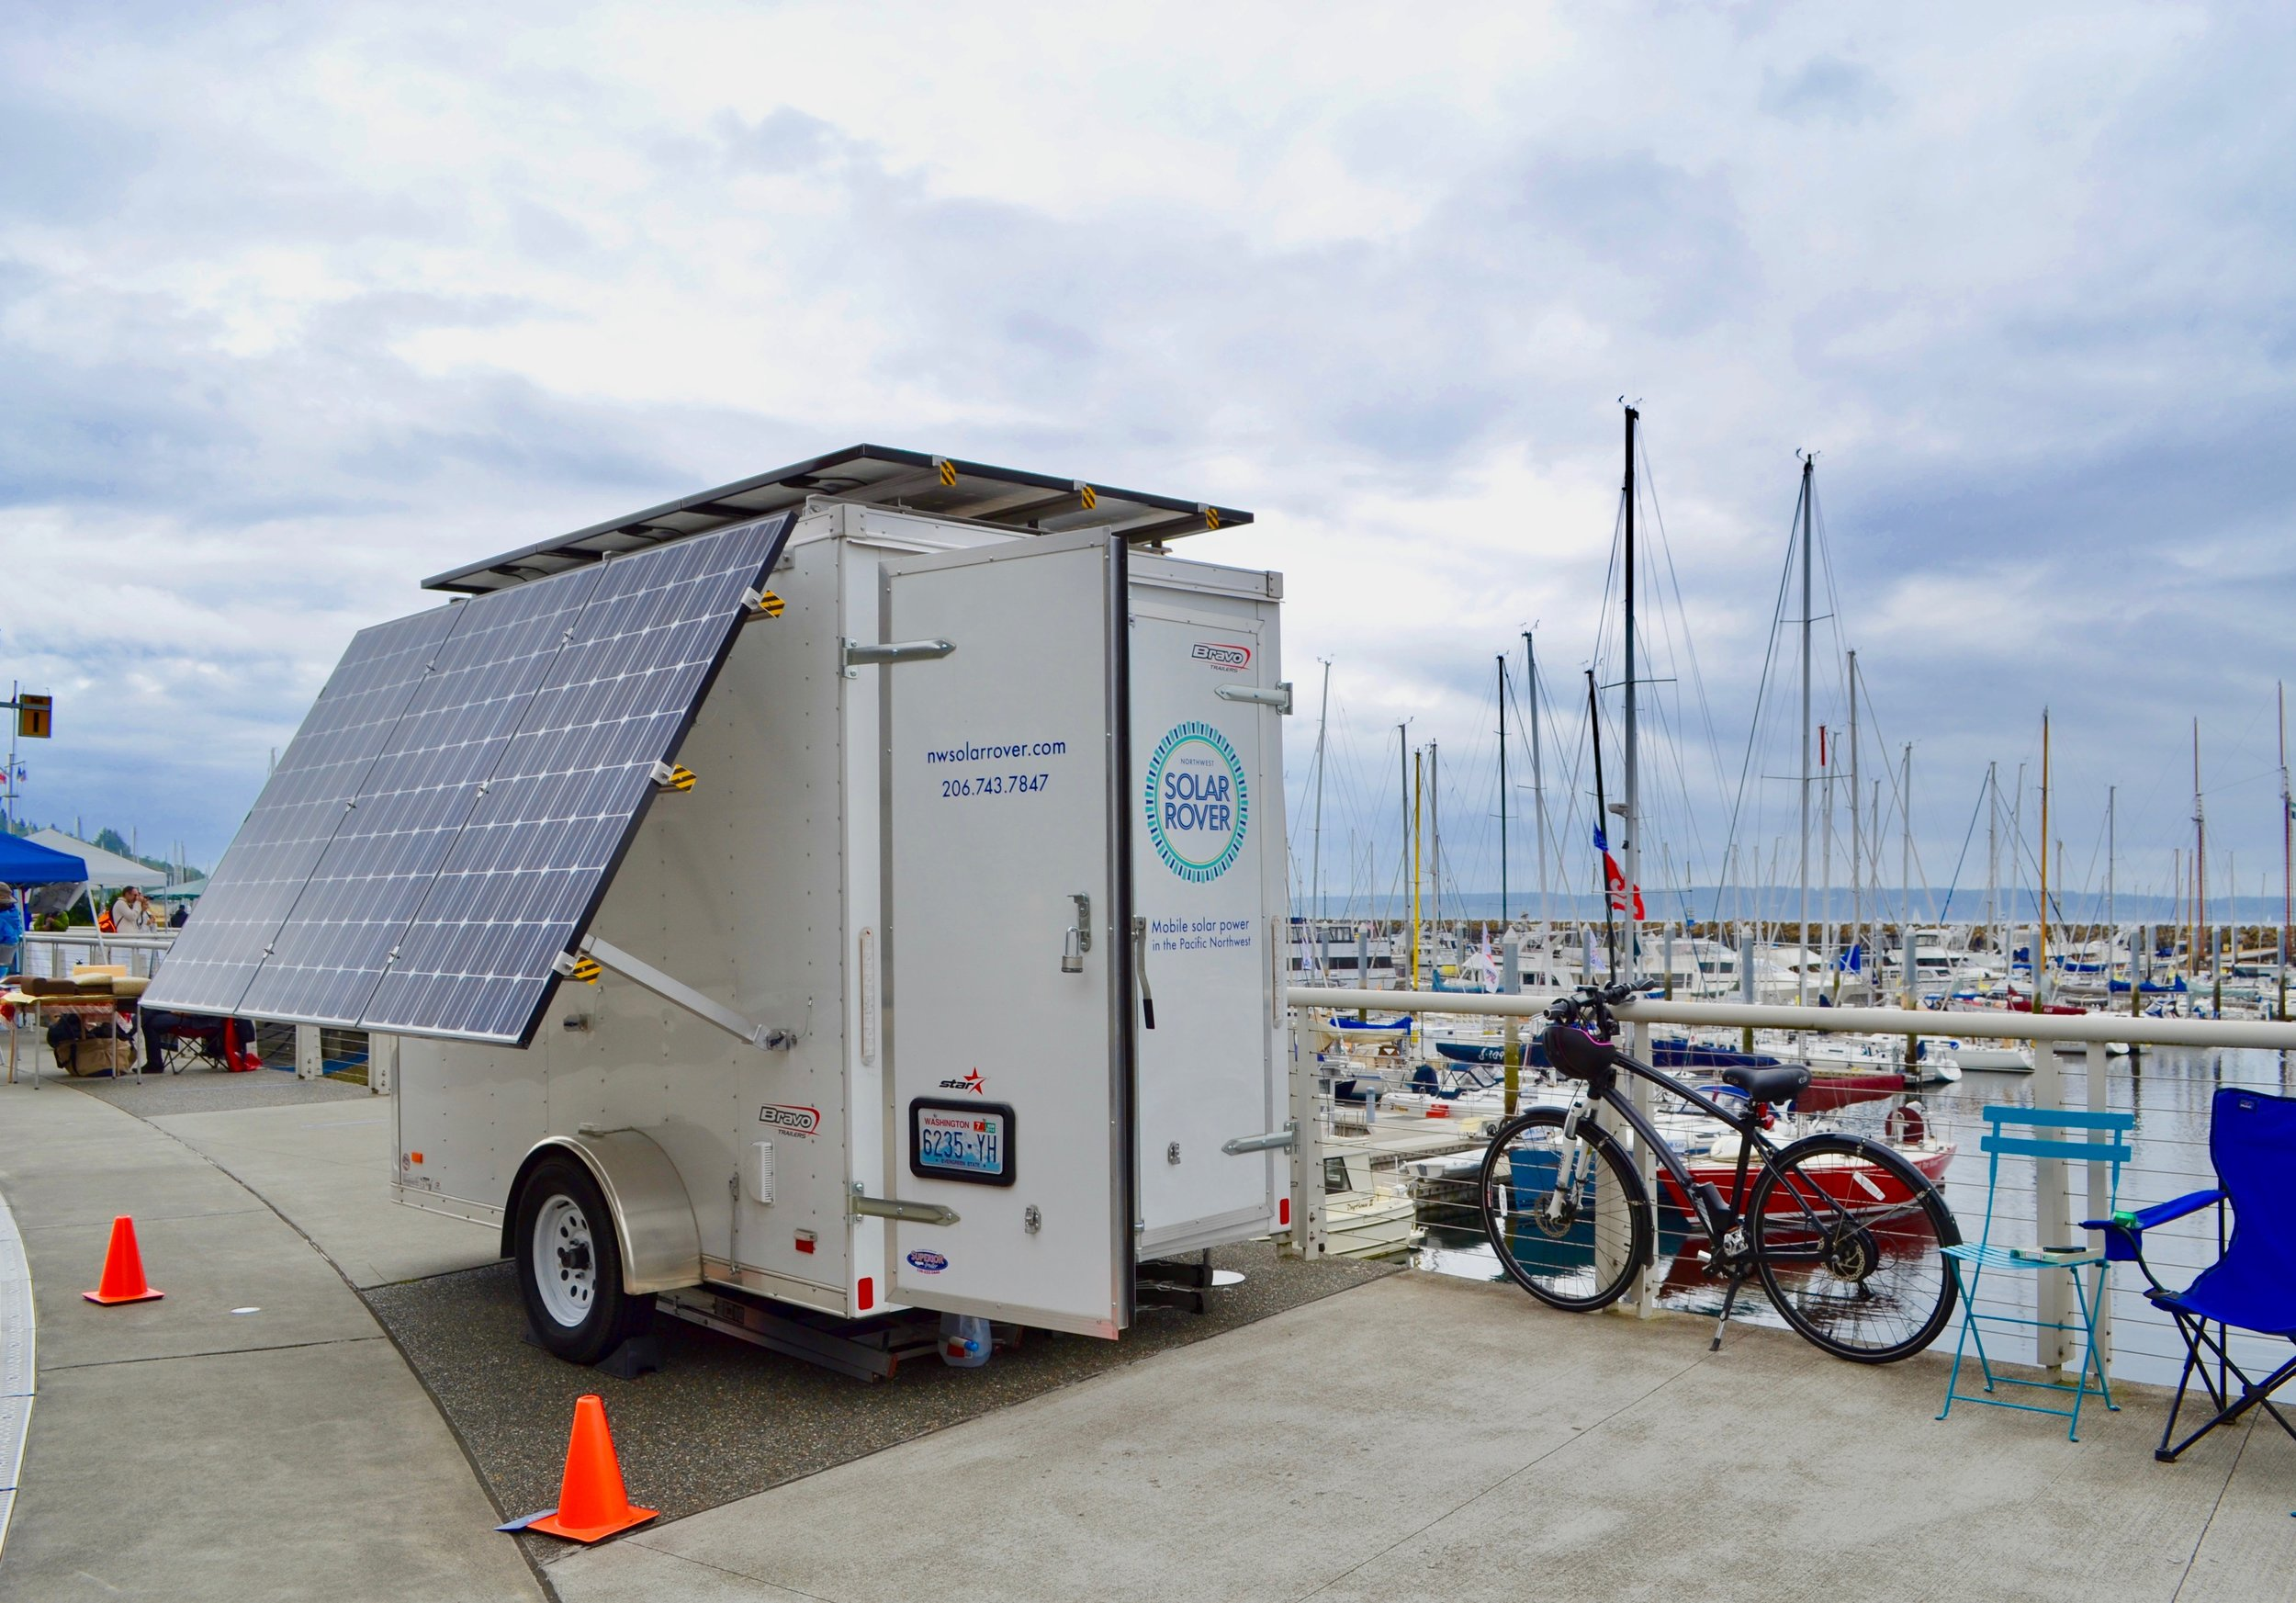 Sending solar power down the way to a band at a Shilshole Bay Marina party.